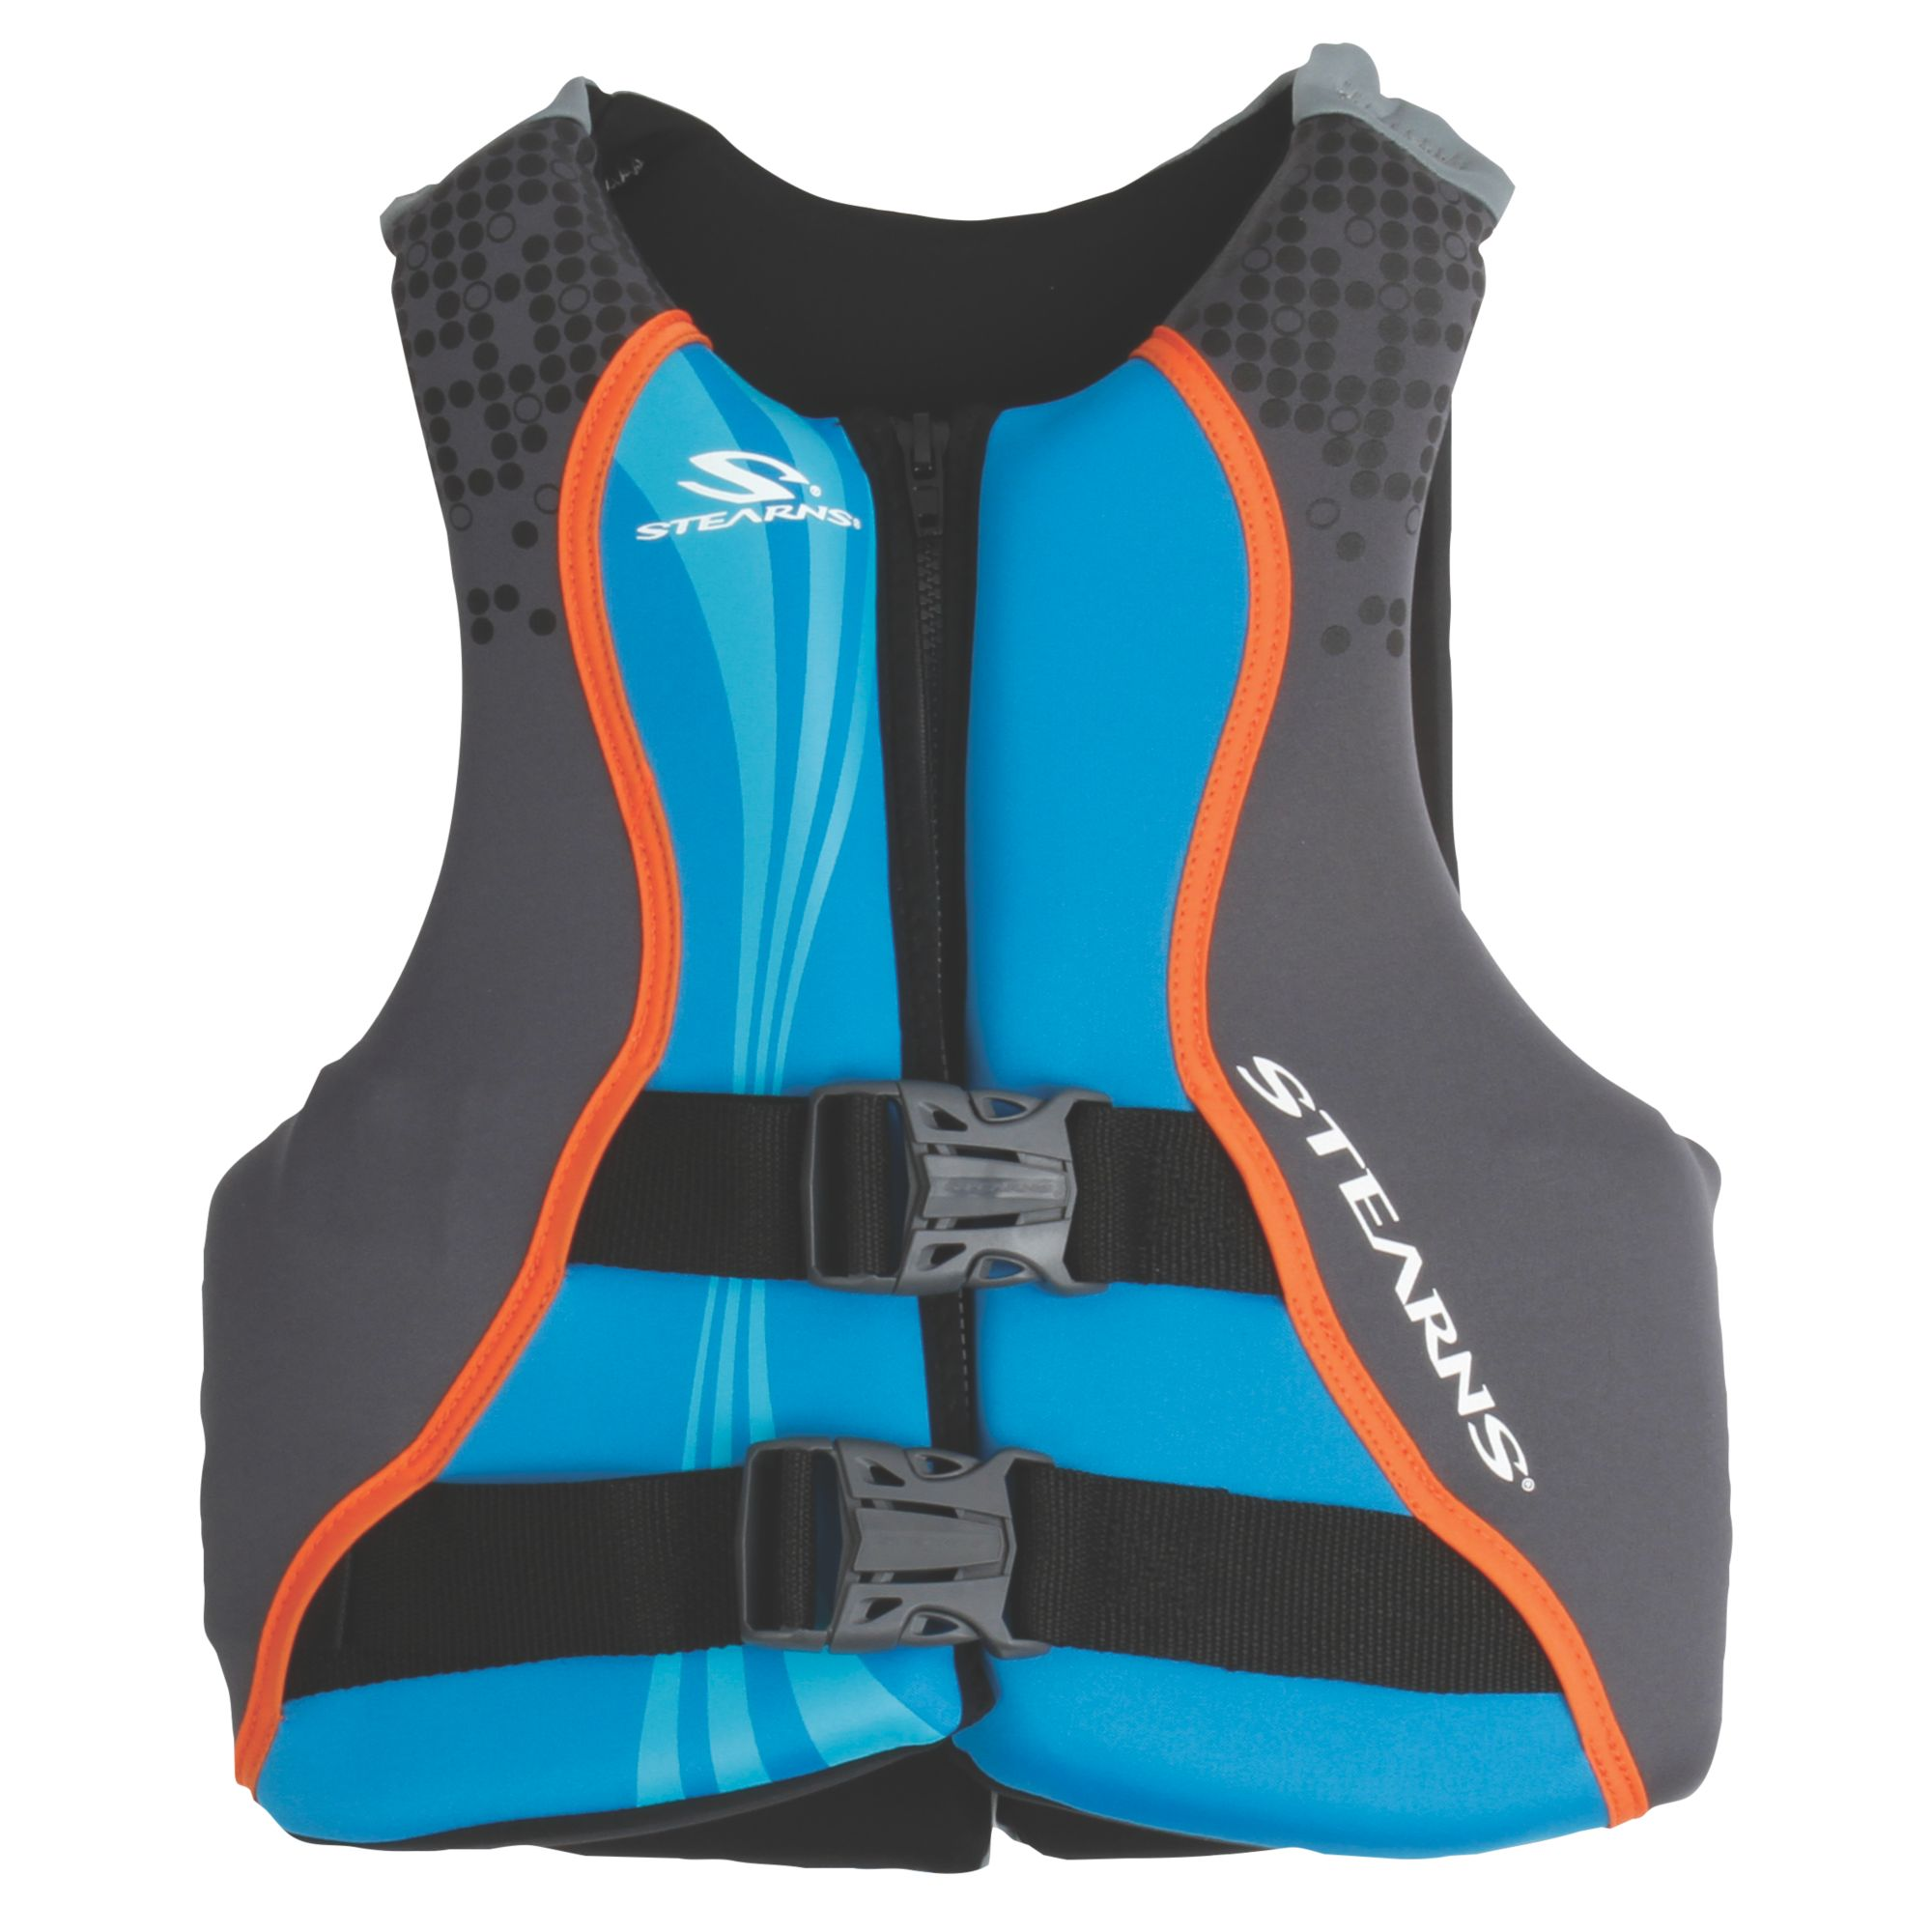 Stearns Youth Hydroprene Vest by COLEMAN